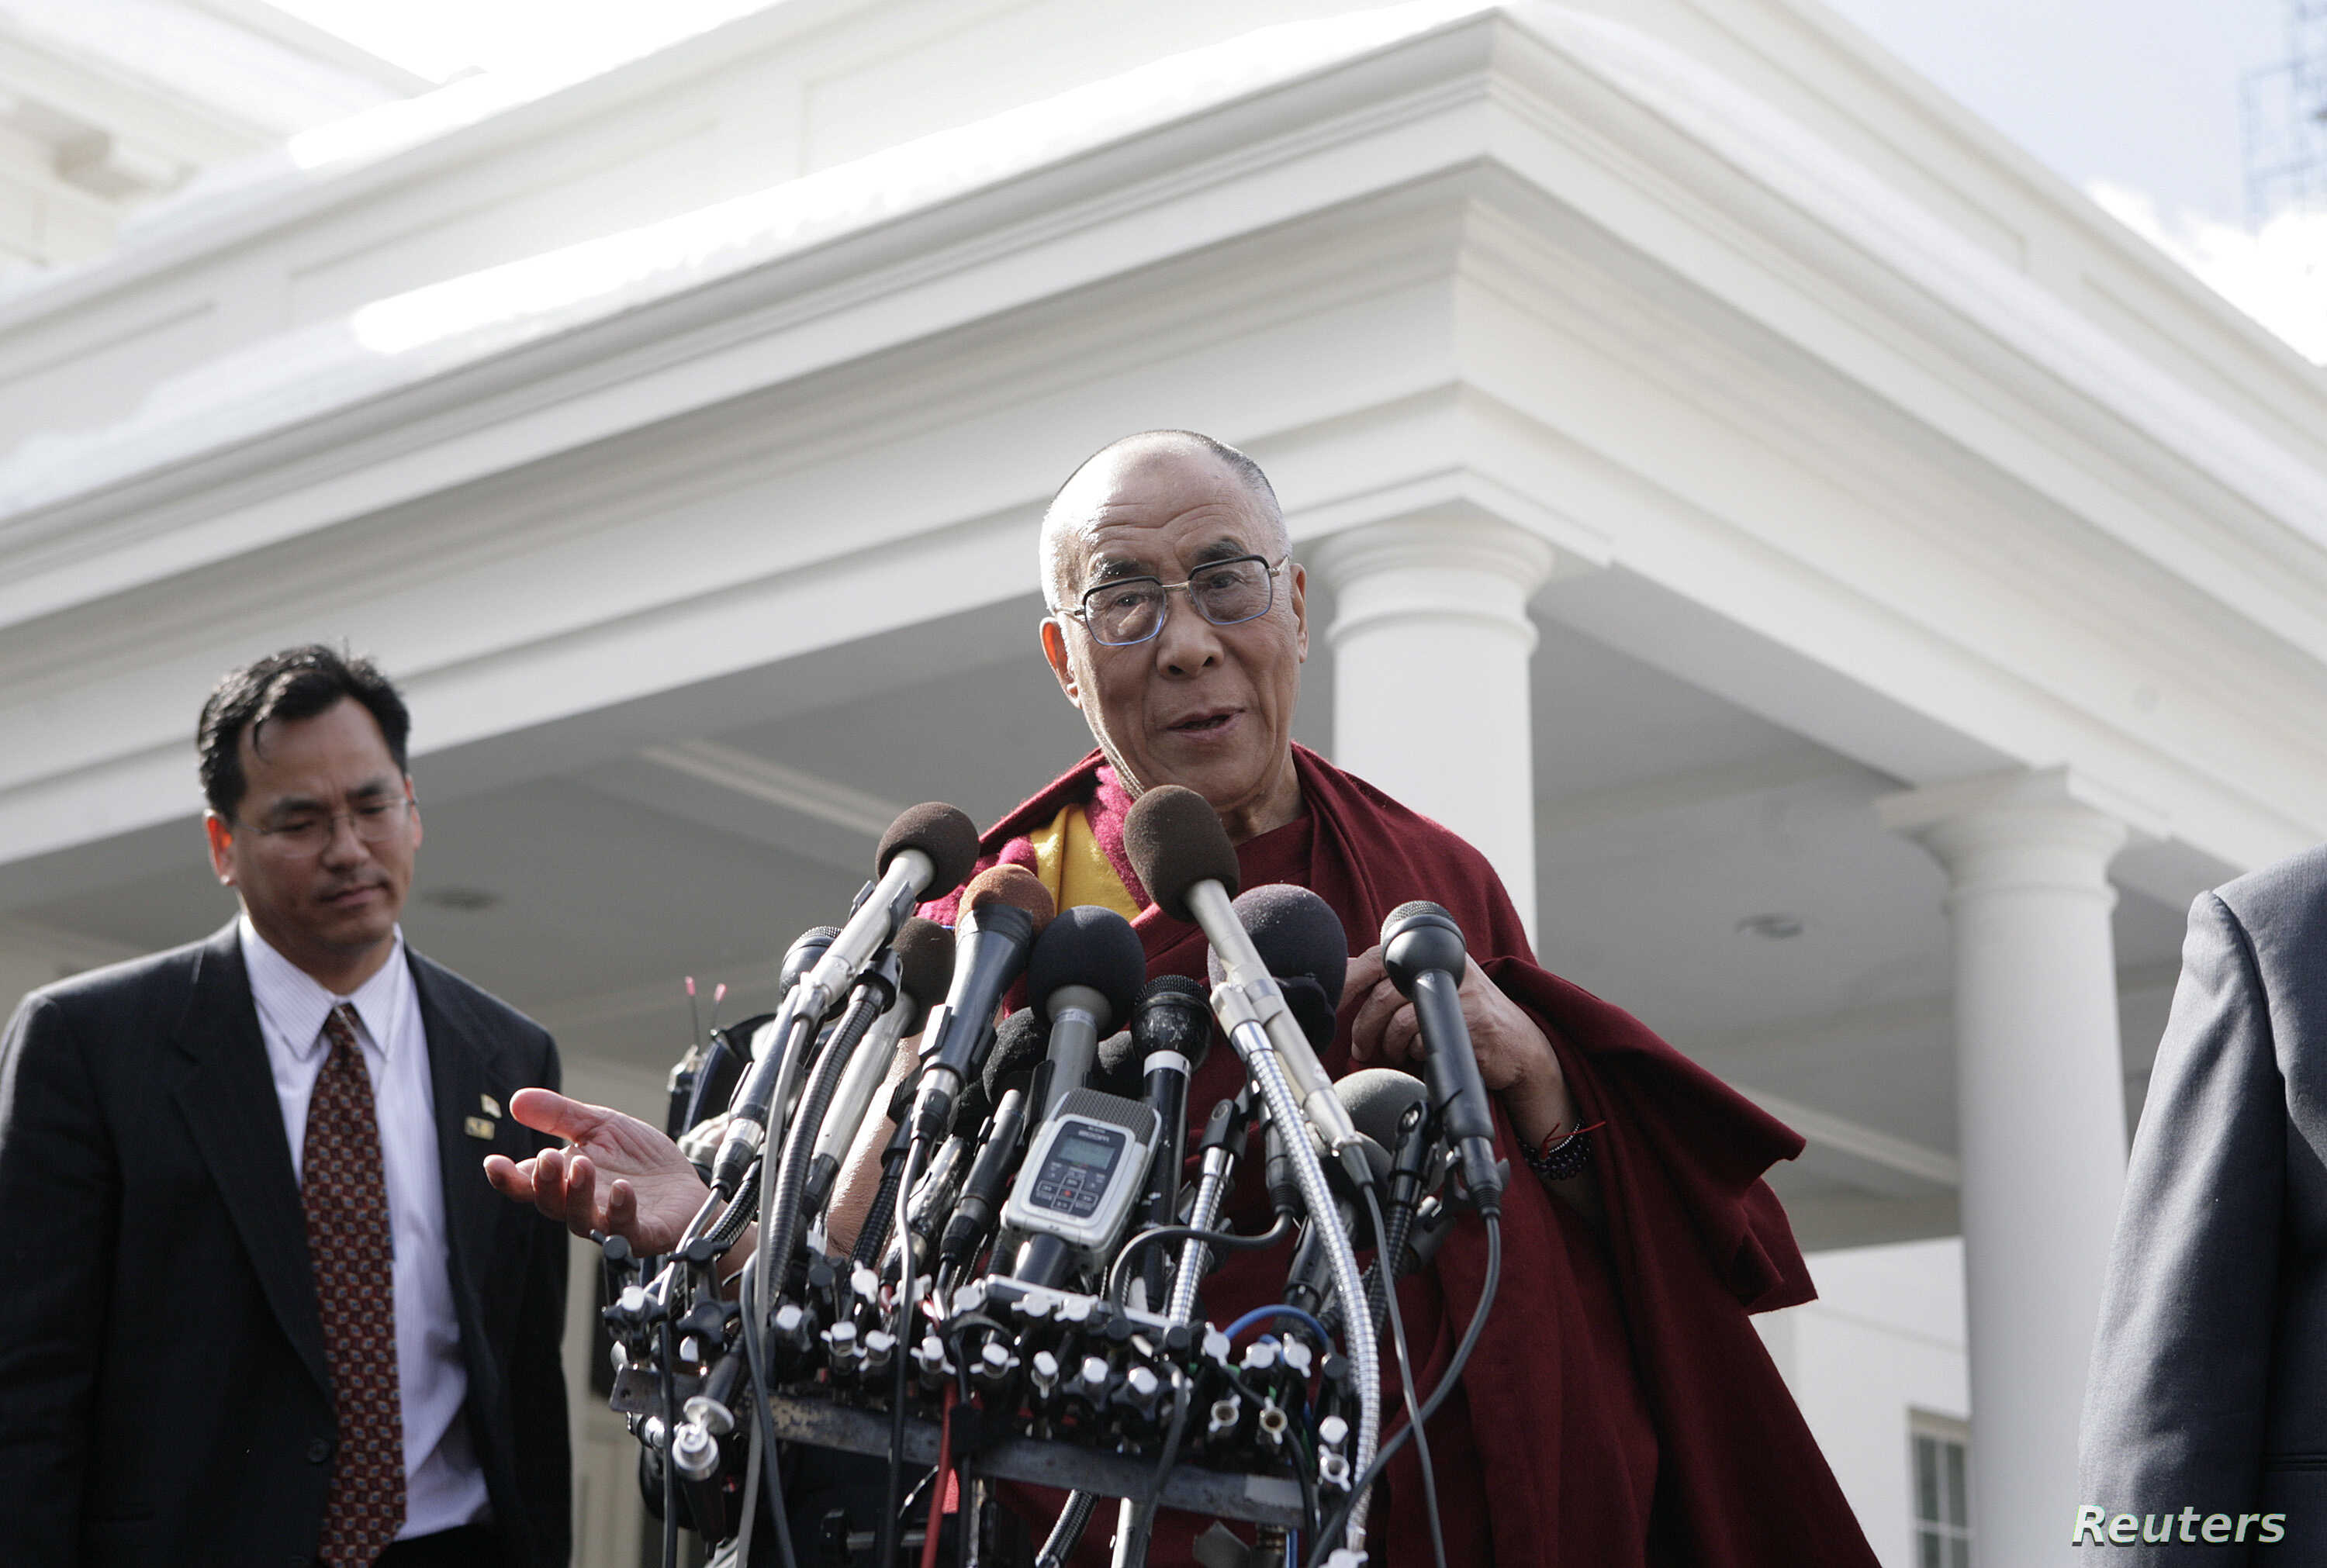 FILE - The Tibetan spiritual leader the Dalai Lama talks to the media after his meeting with U.S. President Barack Obama at the White House in Washington, Feb. 18, 2010.